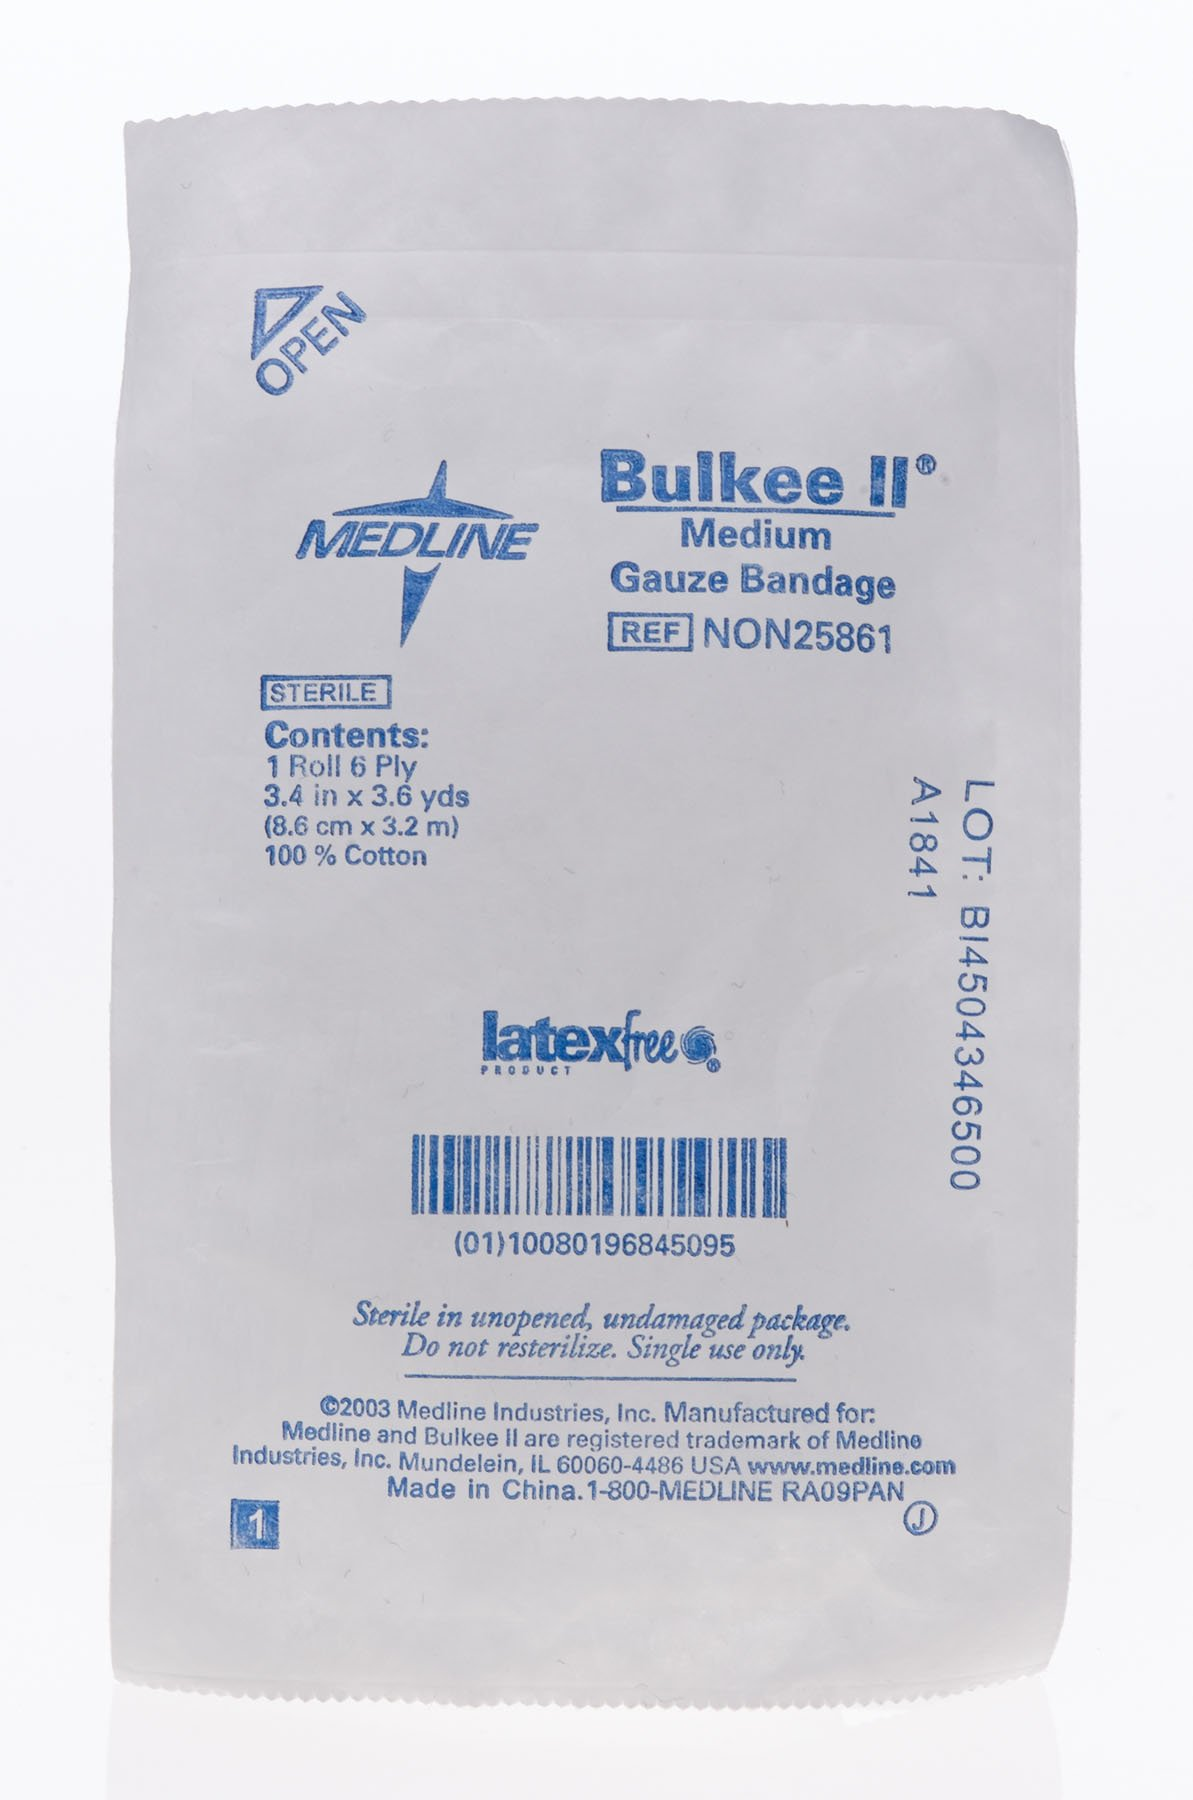 Medline NON25861 Bulkee II Non-Sterile Latex Free Cotton Gauze Stretched Bandage, 3.4'' x 3.6 yd (Pack of 96)